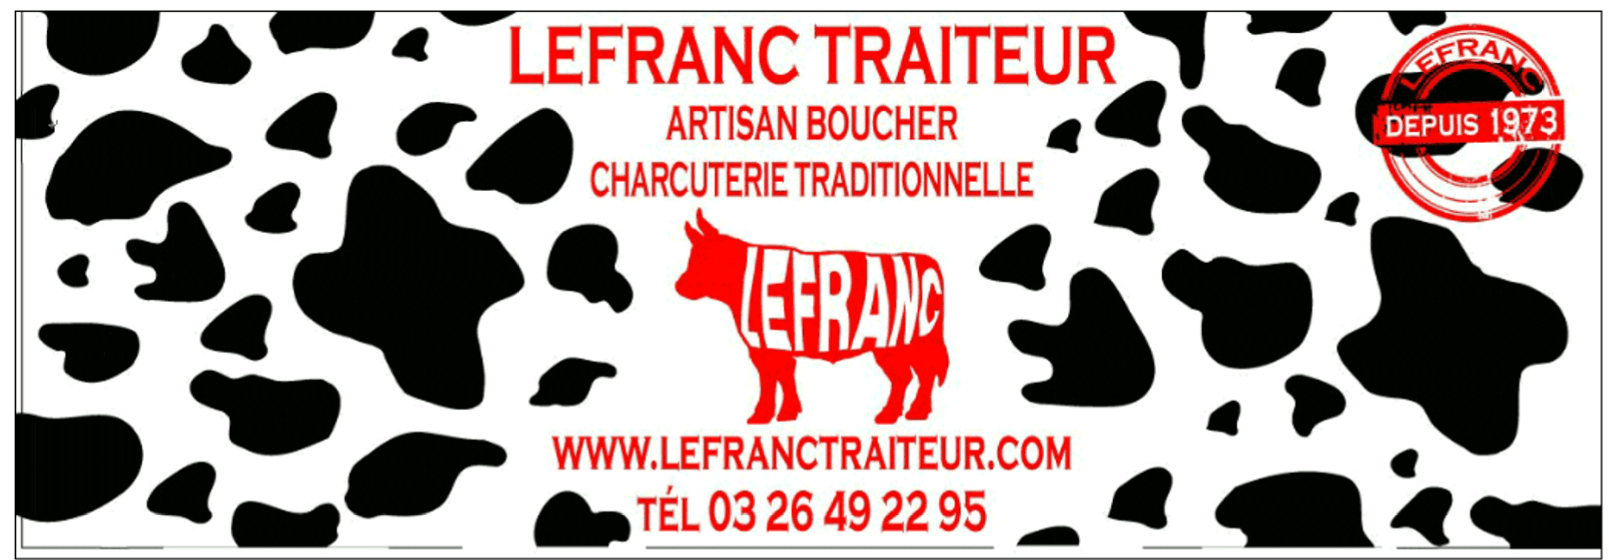 Lefranc traiteur compressed